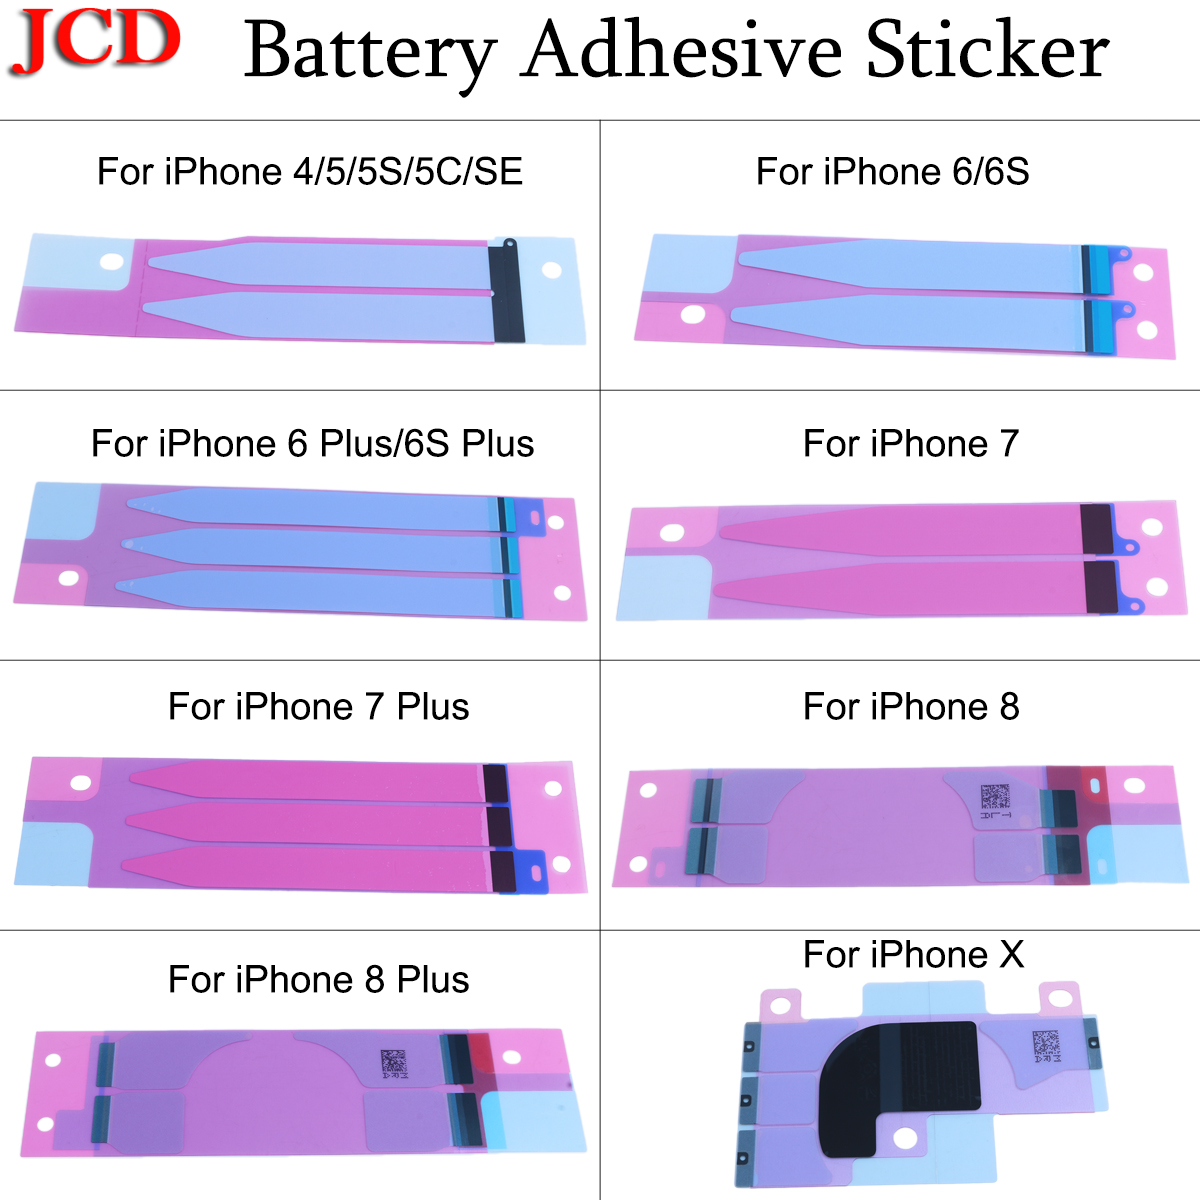 JCD 10pcs Battery Adhesive Sticker For iPhone X 5s 5c 6 6s 7 8 plus Battery Glue Tape Strip Tab Replacement Part for iPhone X